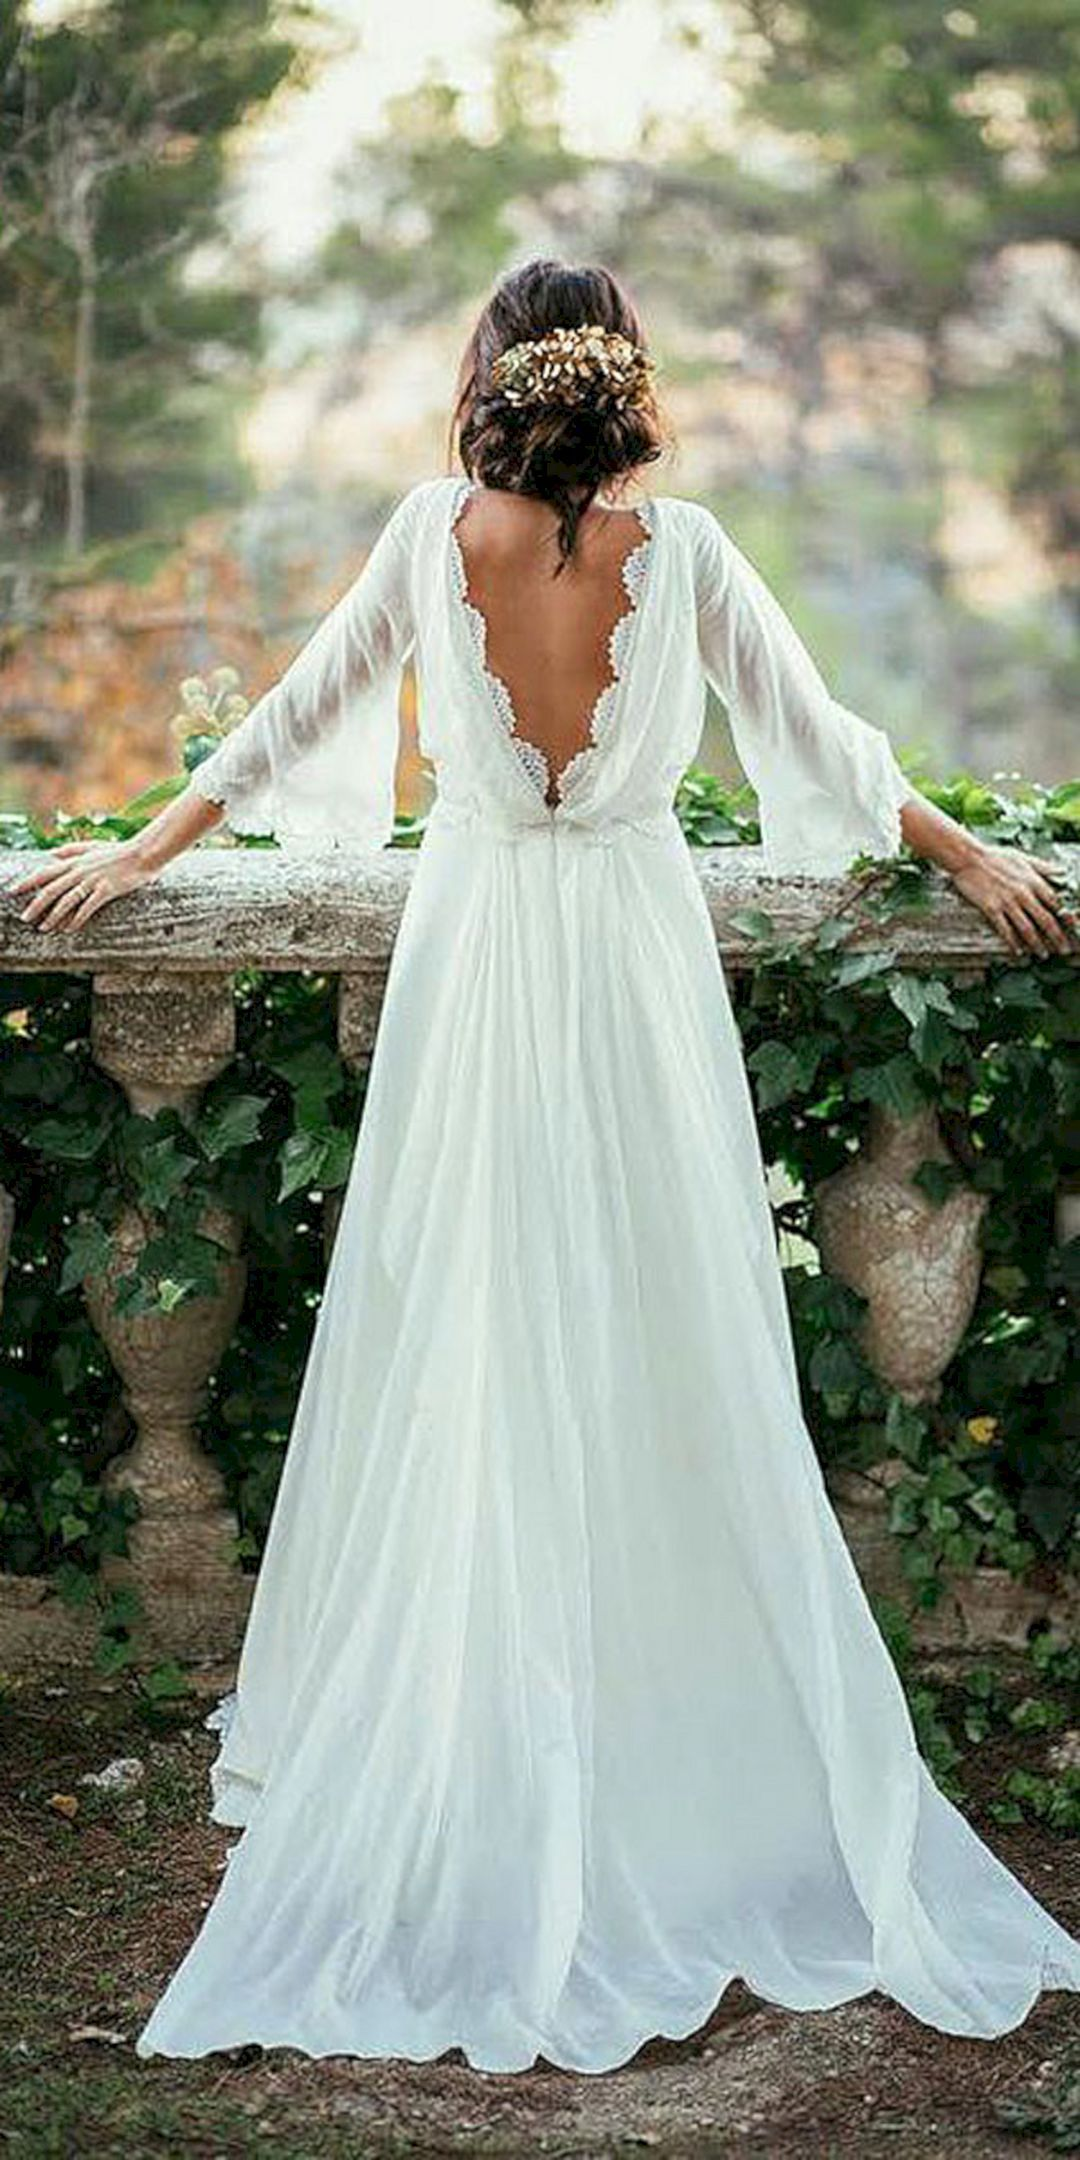 4547e4dddce4 Best Awesome 25+ Evening Gowns Backless Ideas for Bride looks More Elegant  https:/